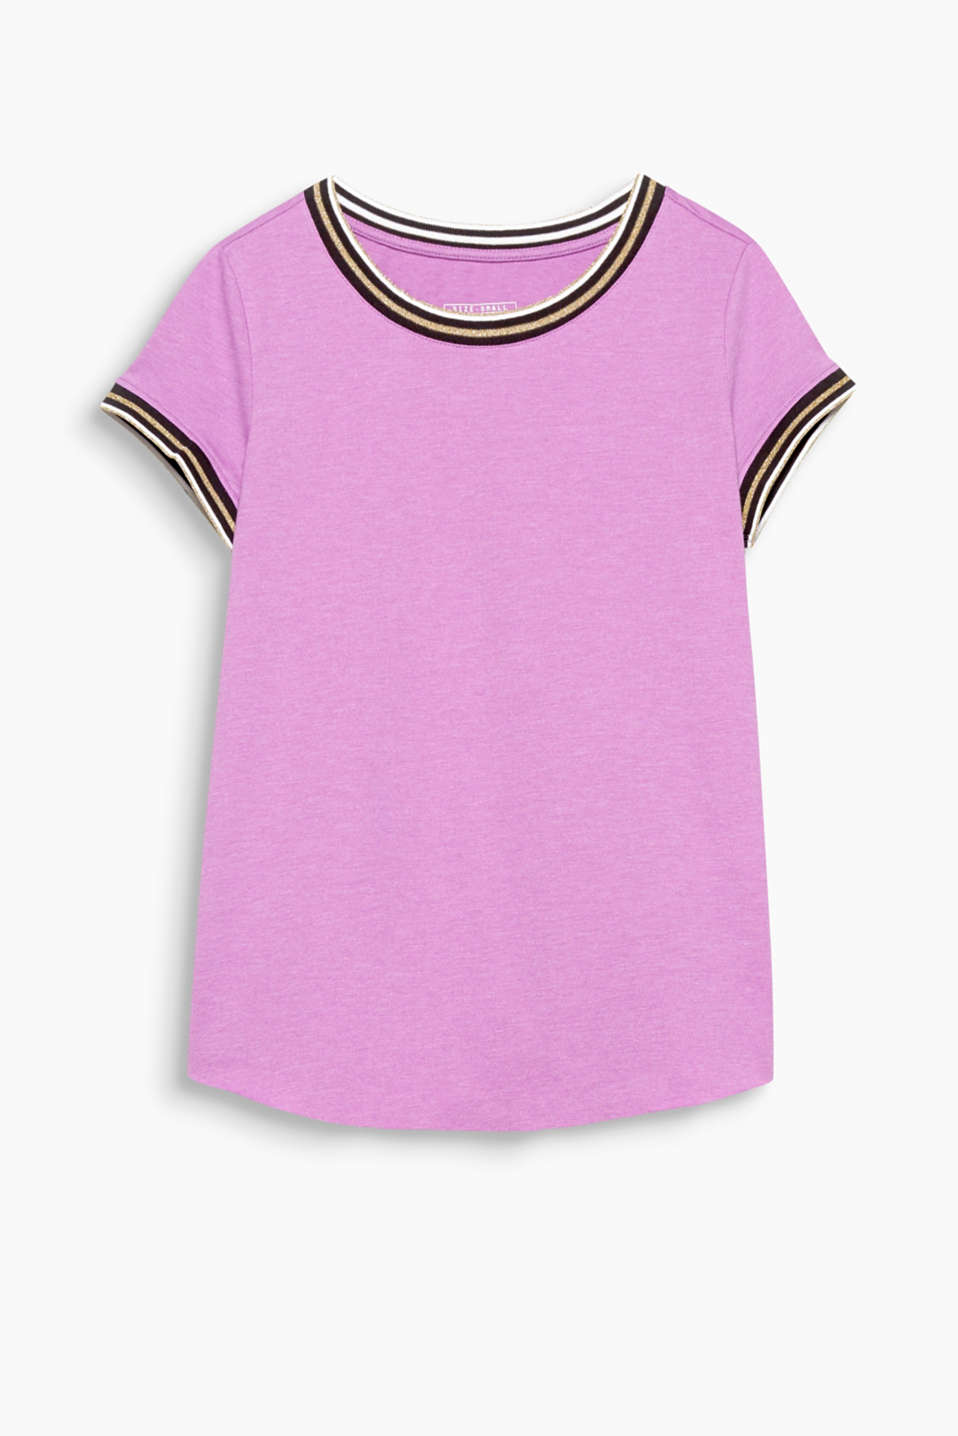 Blended cotton T-shirt with a curved, unfinished hem and wide, round neckline